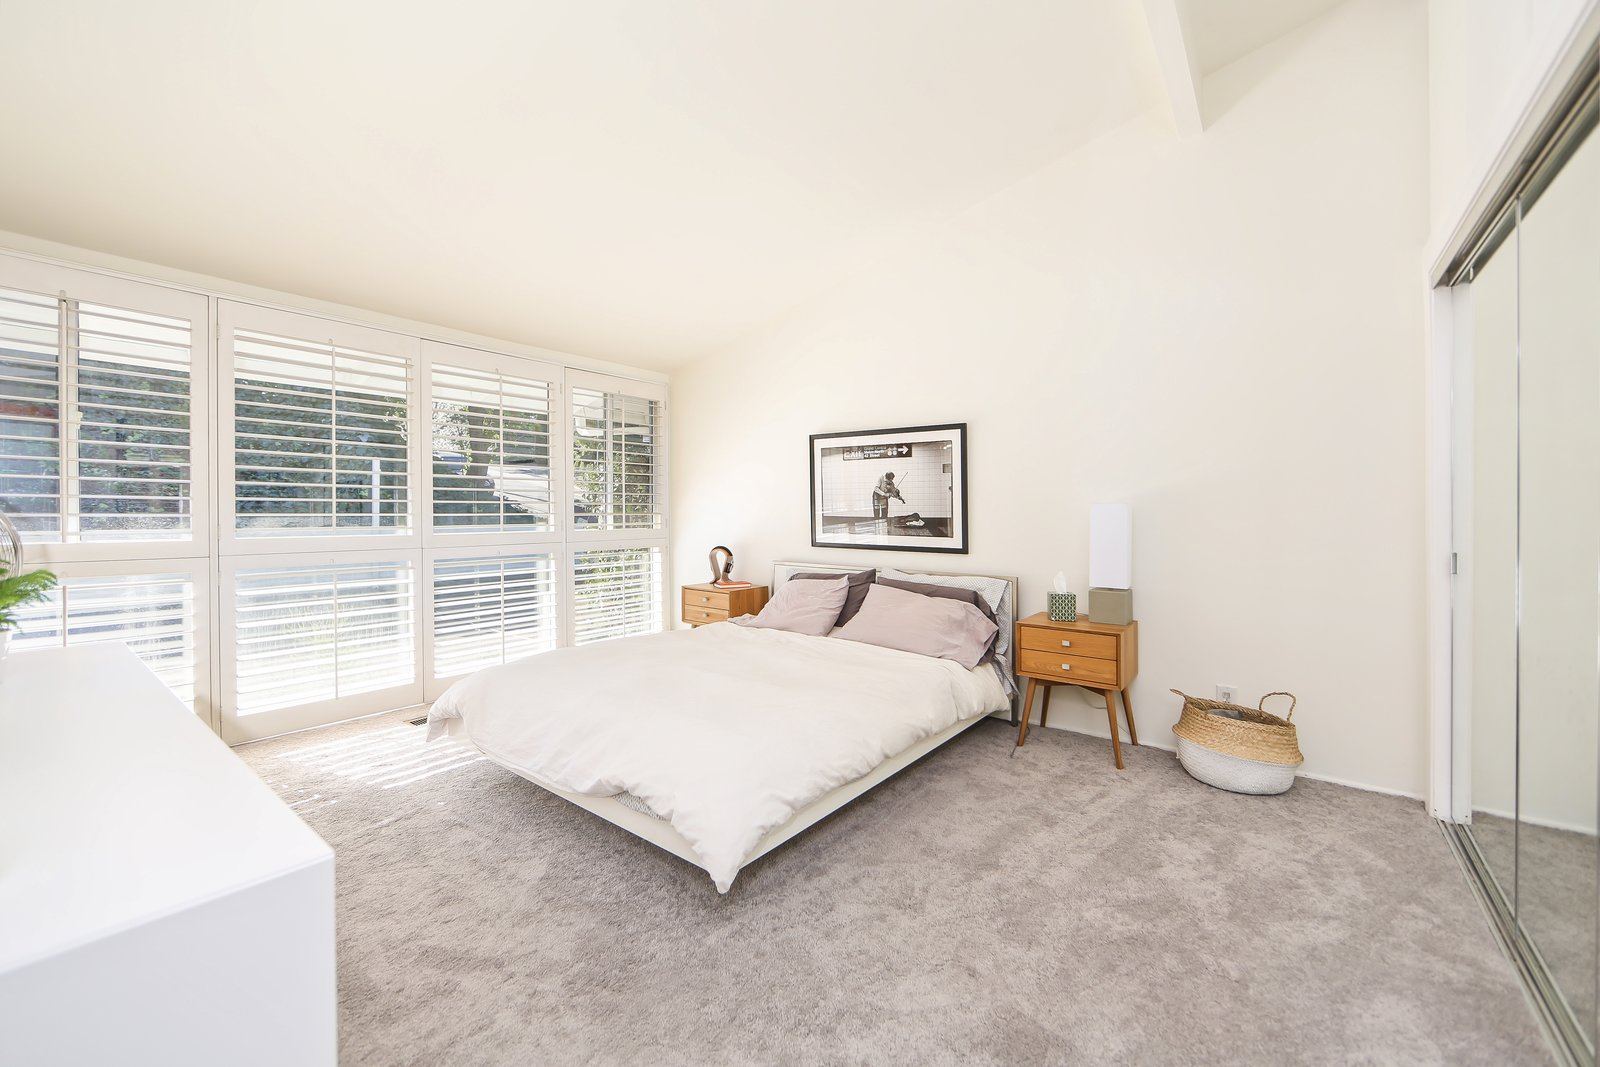 A past renovation included the addition of carpets into the three bedrooms, which have been left clean and simple.  Photo 8 of 10 in If You Crave Bright, Light-Filled Spaces, This Midcentury Home For Sale Could Be the One